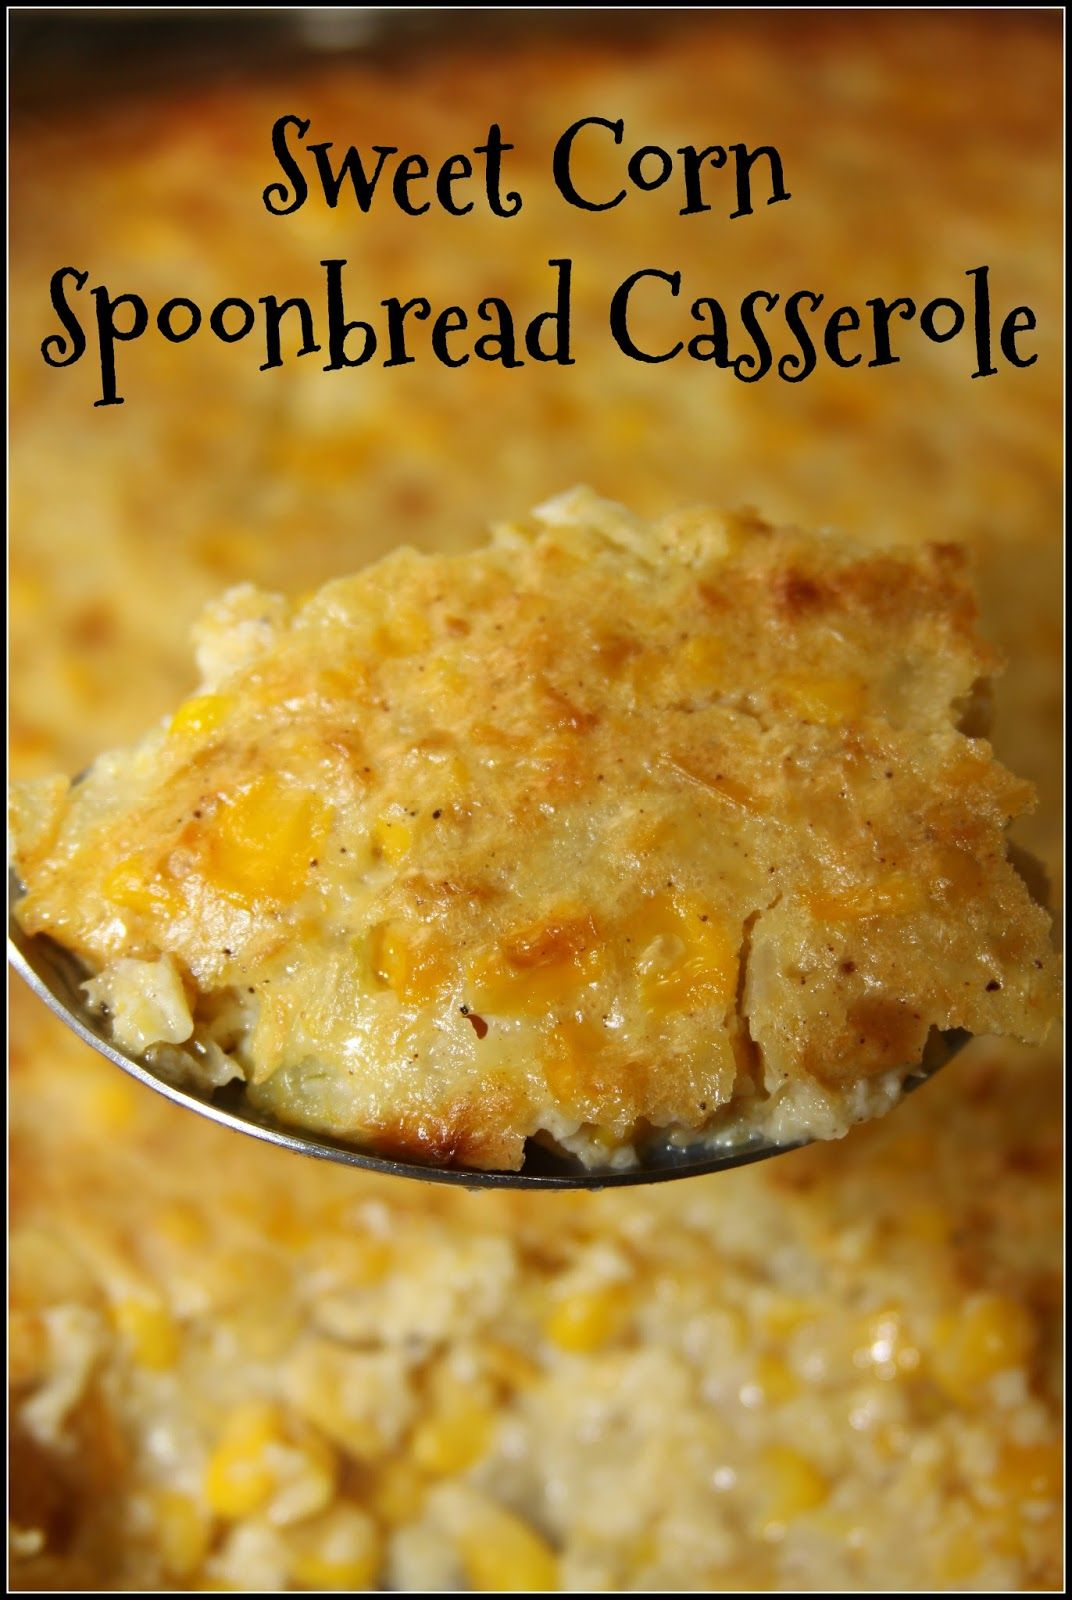 Sweet Corn Spoonbread Casserole For The Love Of Food Blog